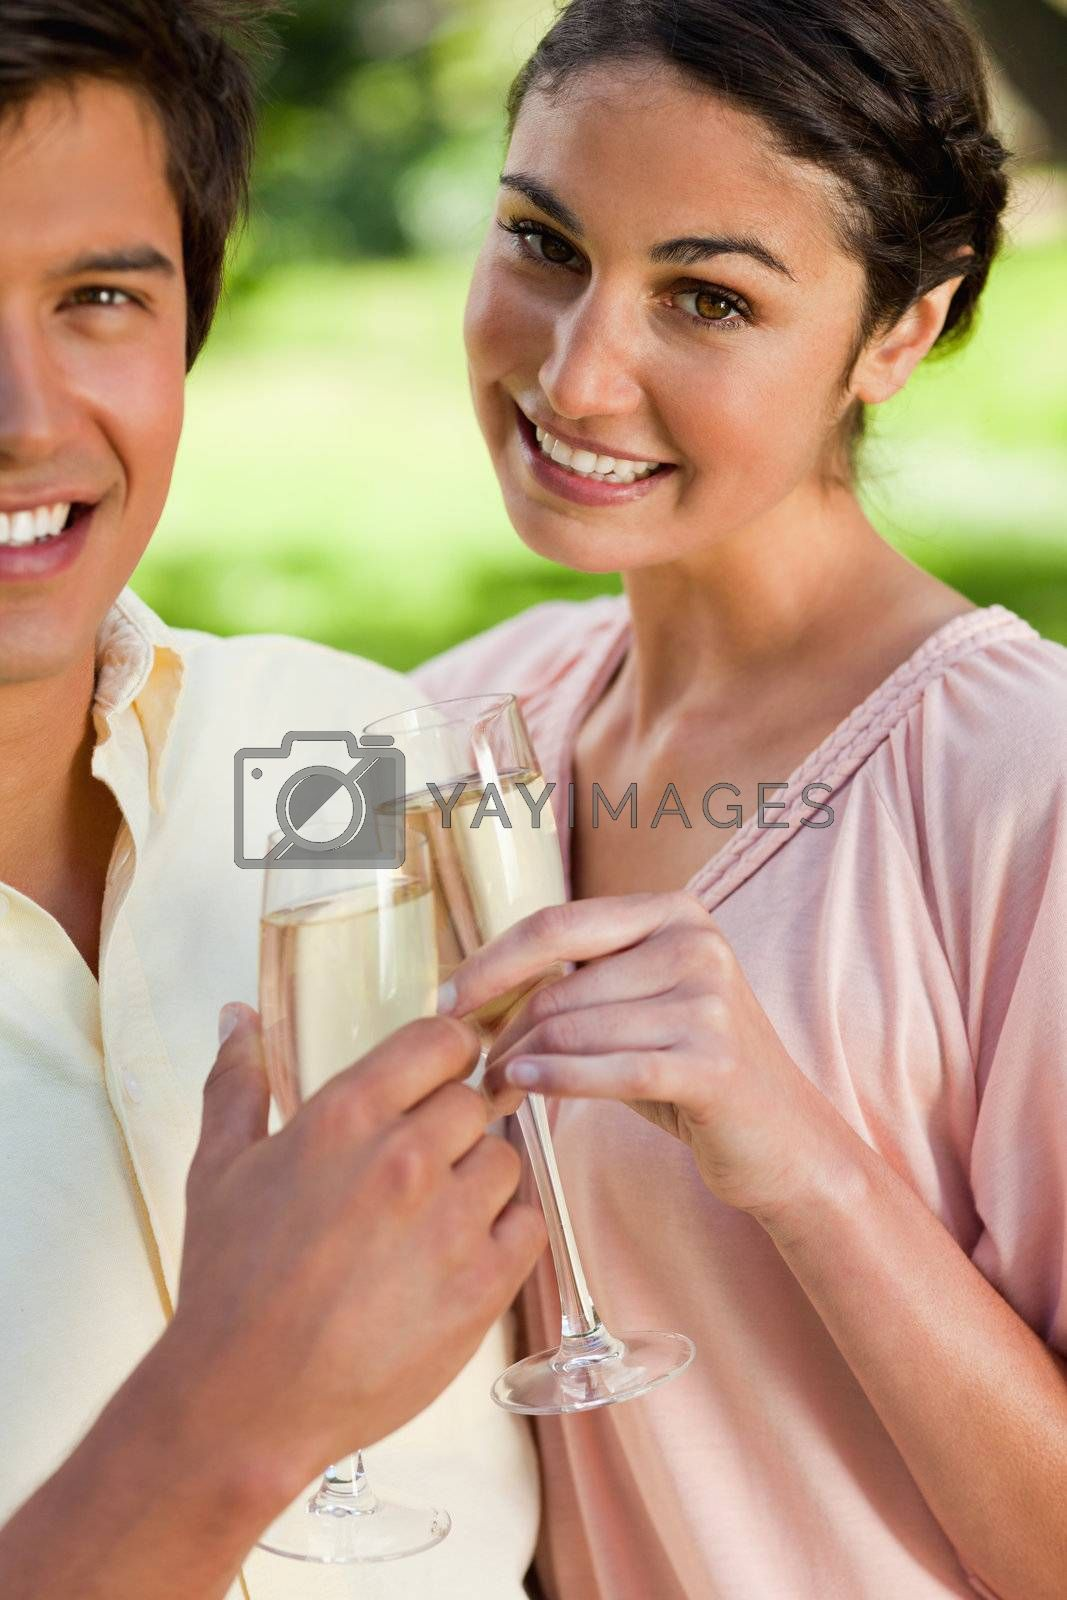 Woman smiling joyfully while touching glasses of champagne with her friend in celebration